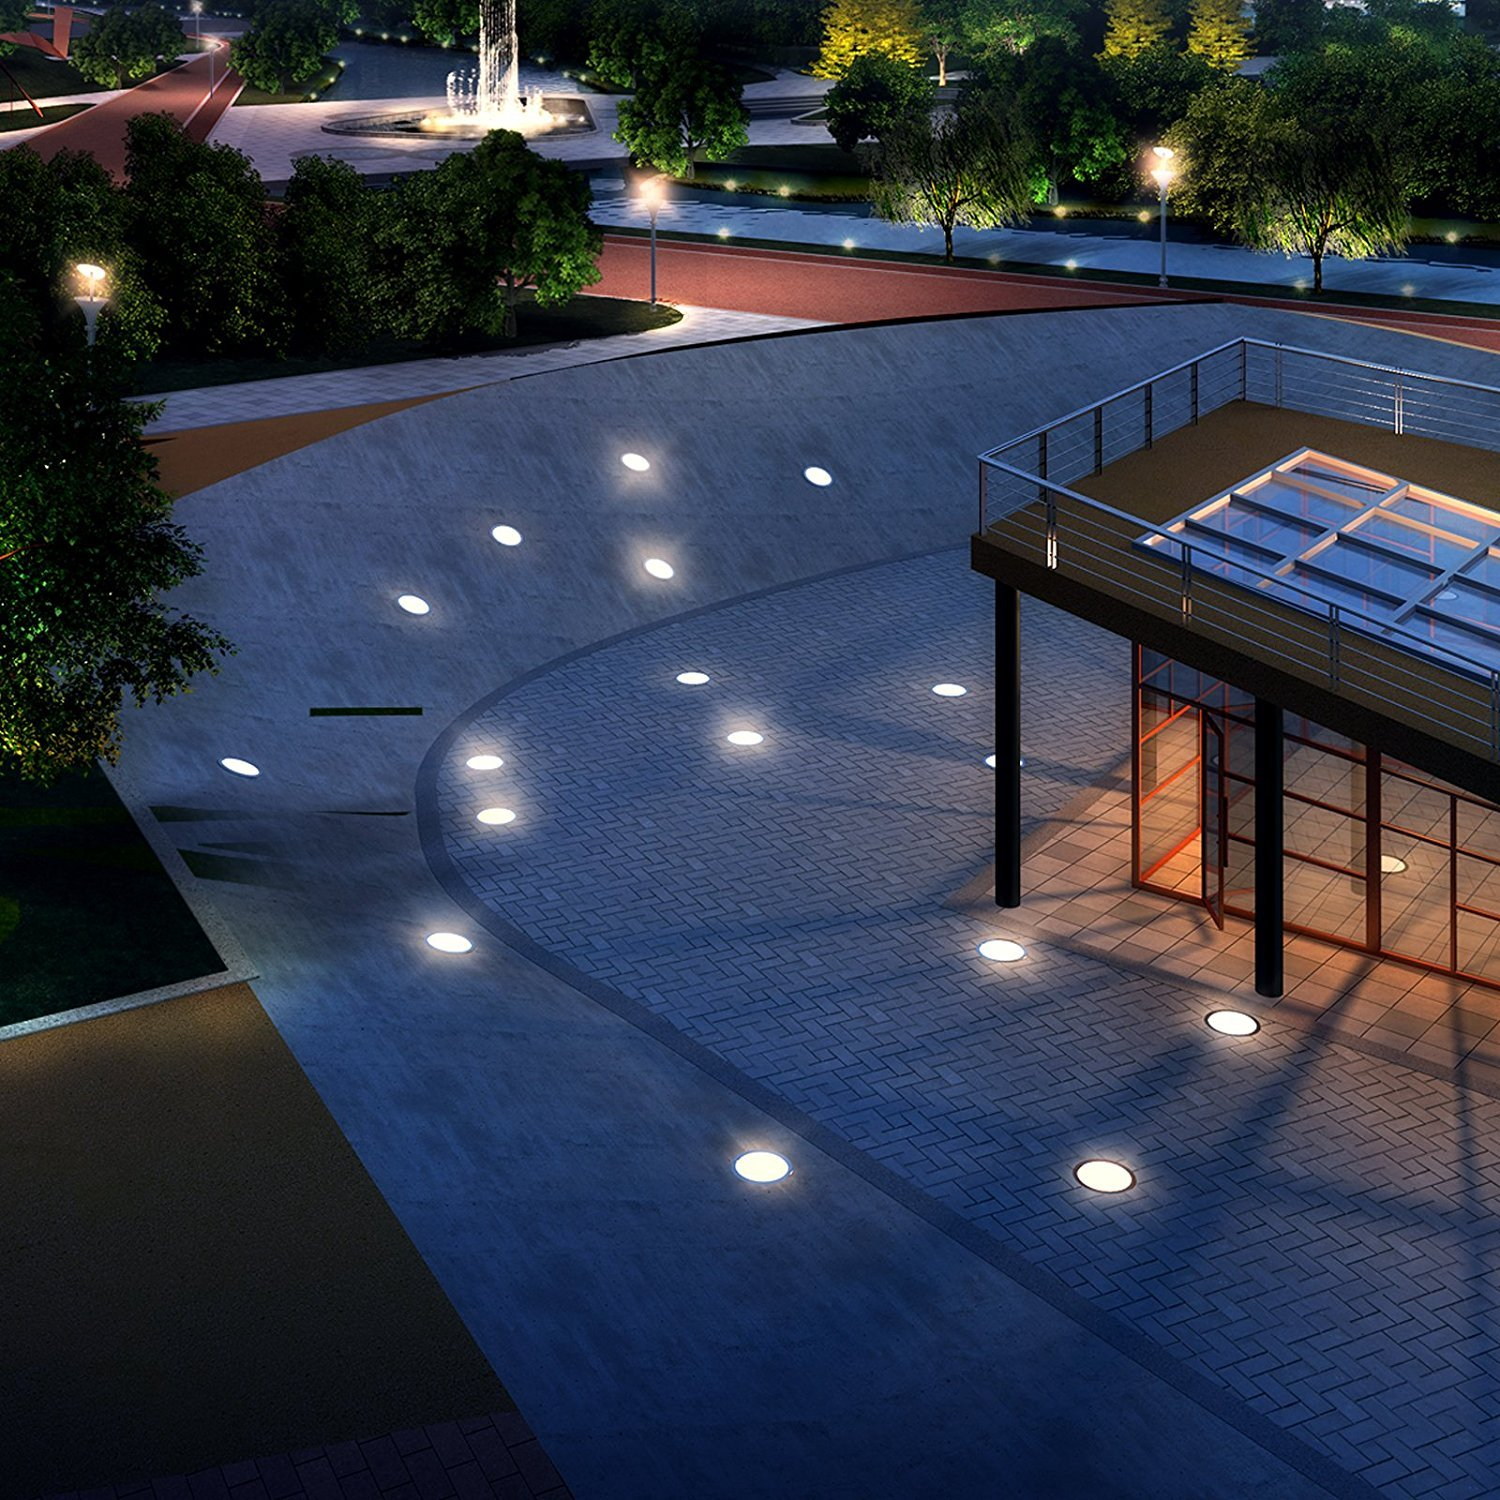 MILISO 3W LED Underground Path Light Yard Garden Landscape In-ground Well Lights High Power Outdoor Decorative Spotlight AC/DC 12V Low Voltage White by MILISO (Image #3)